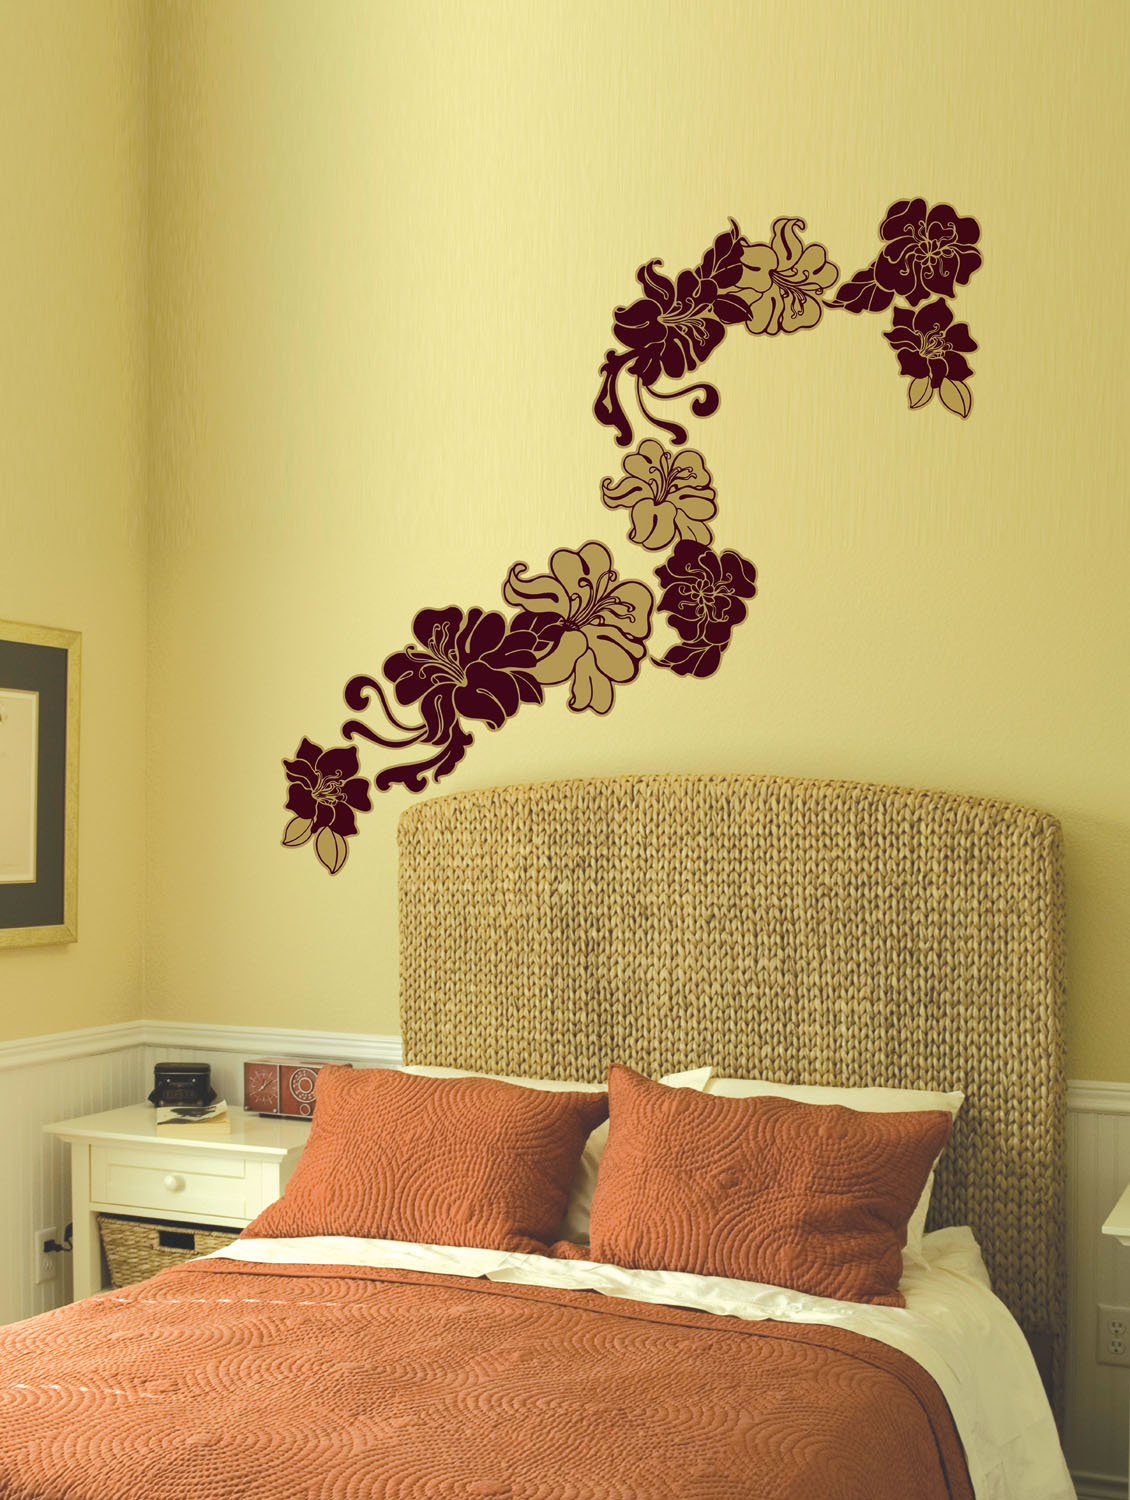 Buy Art Noveau Floral Wall Sticker by Home Decor Line - Online ...